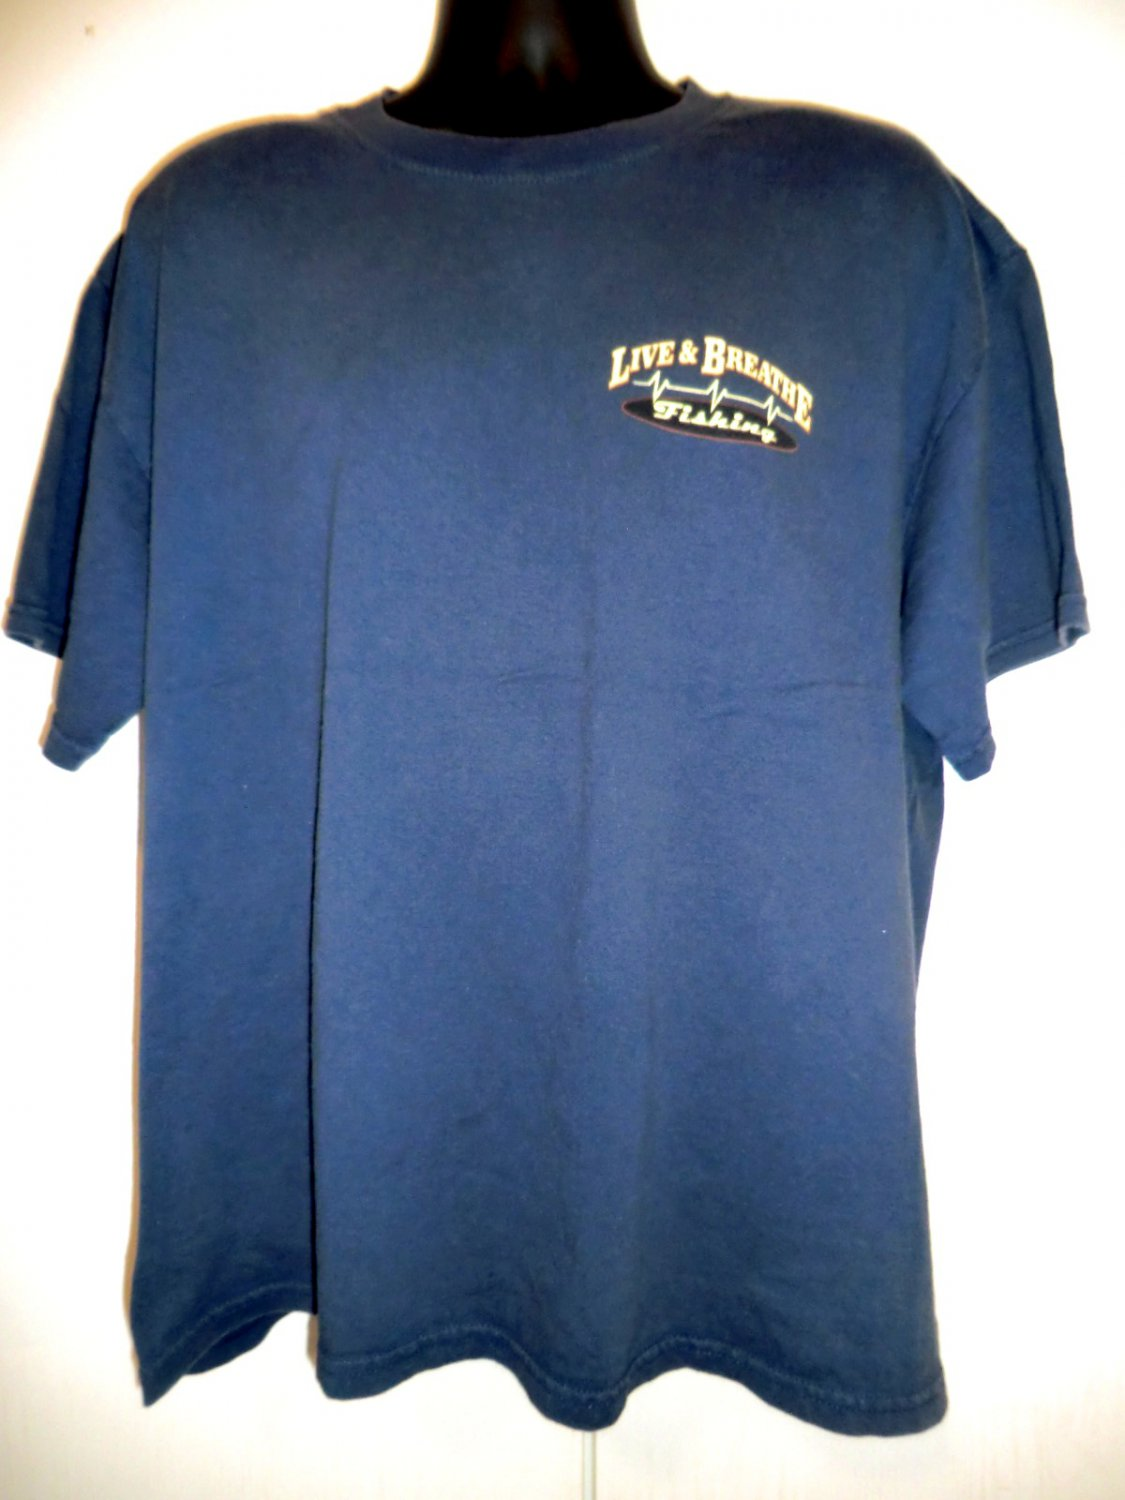 Live & Breathe Fishing T-Shirt Size XL for those who love to Fish .. Fisherman